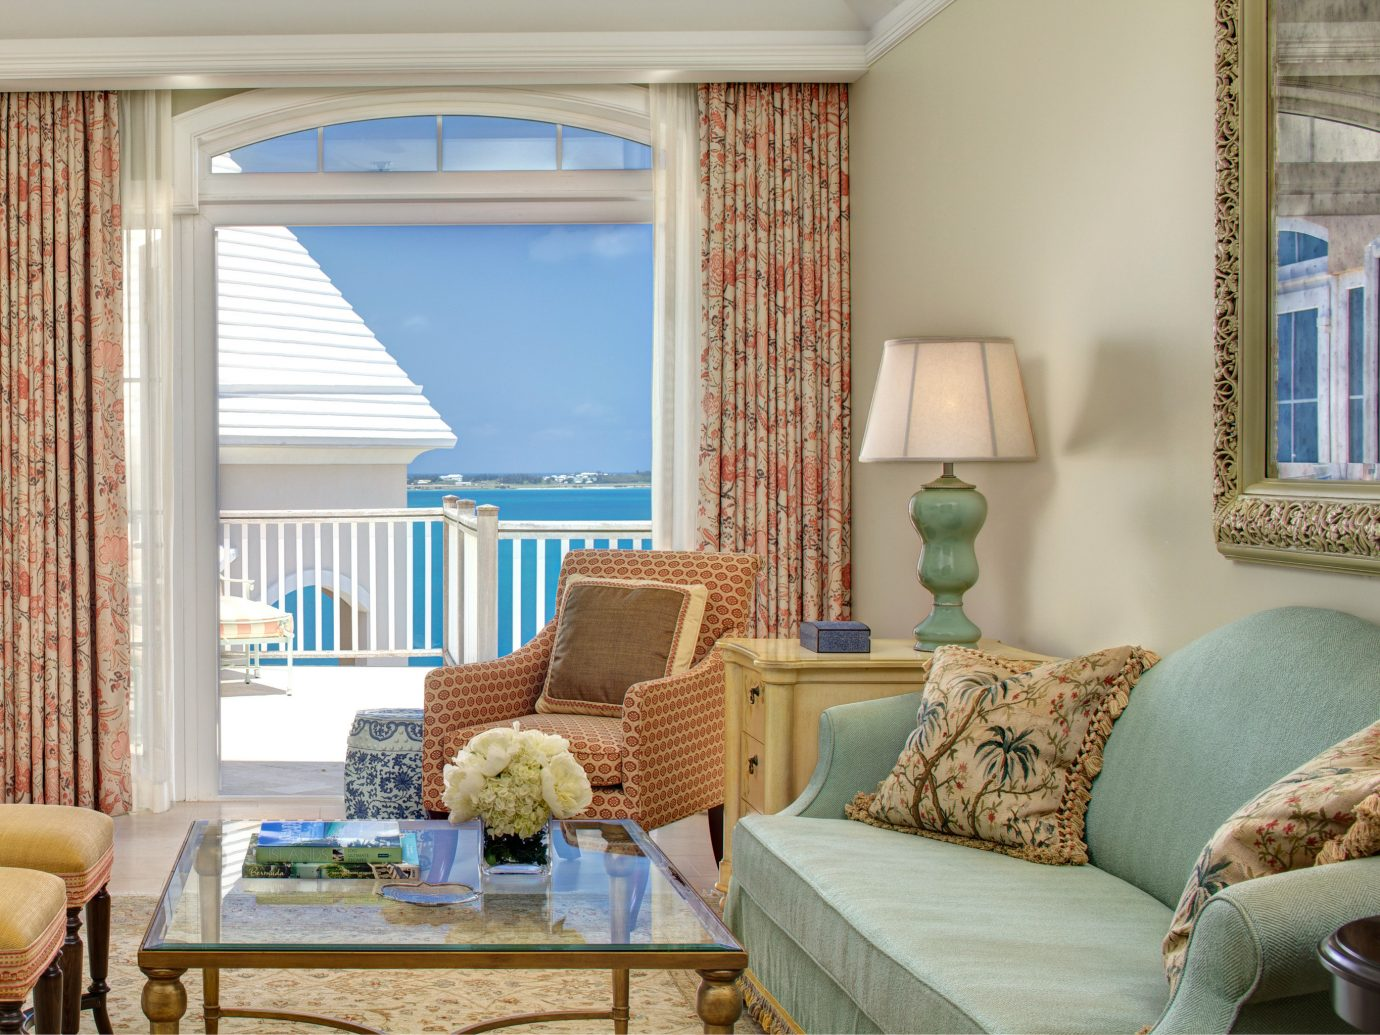 Balcony Beachfront Hotels Island Living Lounge Scenic views Suite Tropical Waterfront indoor window room property living room home interior design cottage estate real estate window covering Bedroom window treatment furniture condominium curtain apartment decorated